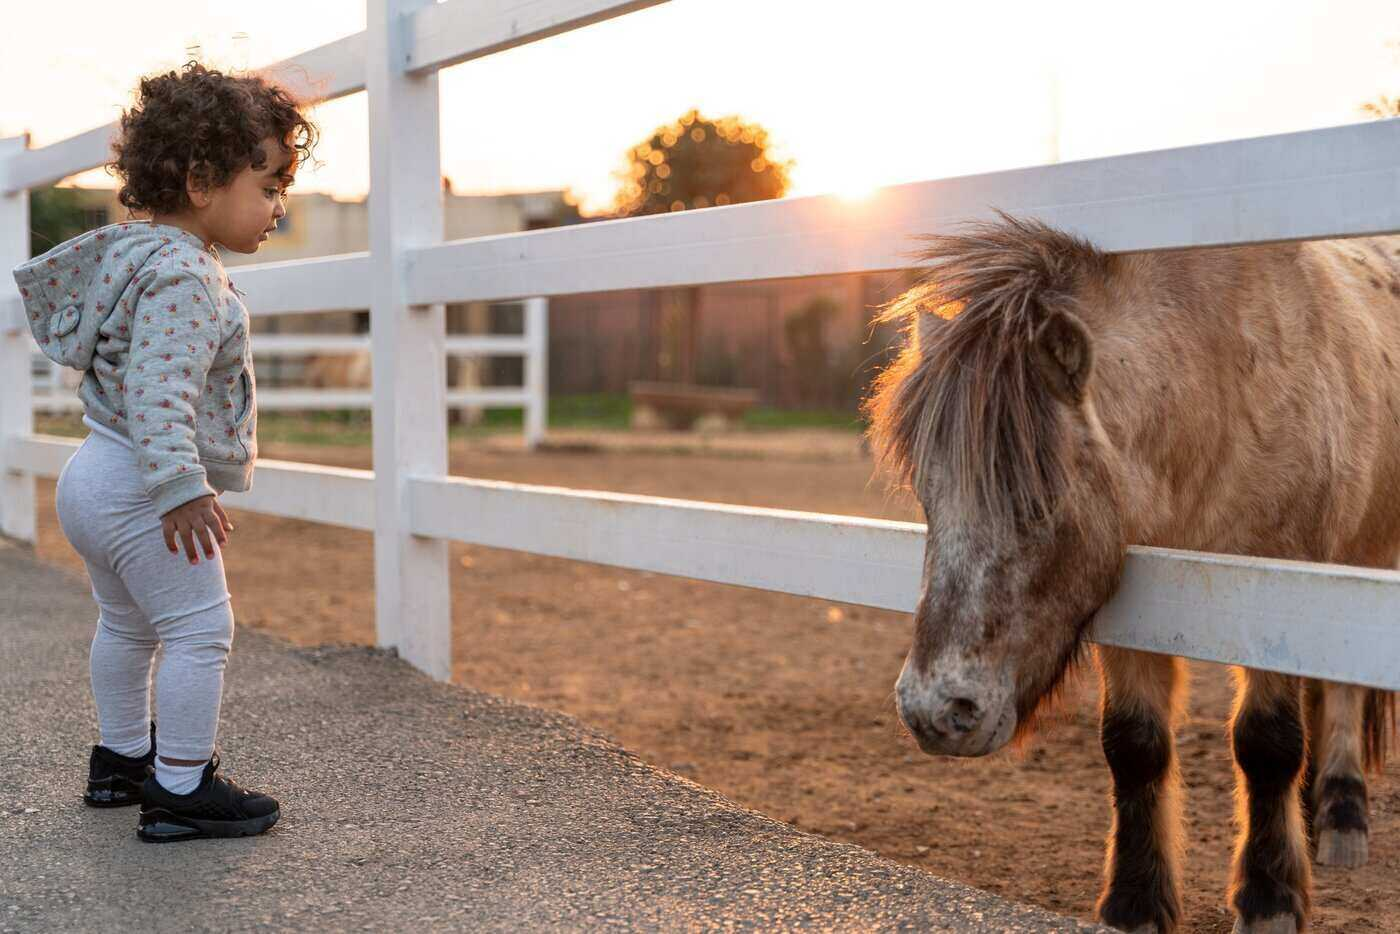 child and pony - horses for sale - 7 tips for first-time buyers